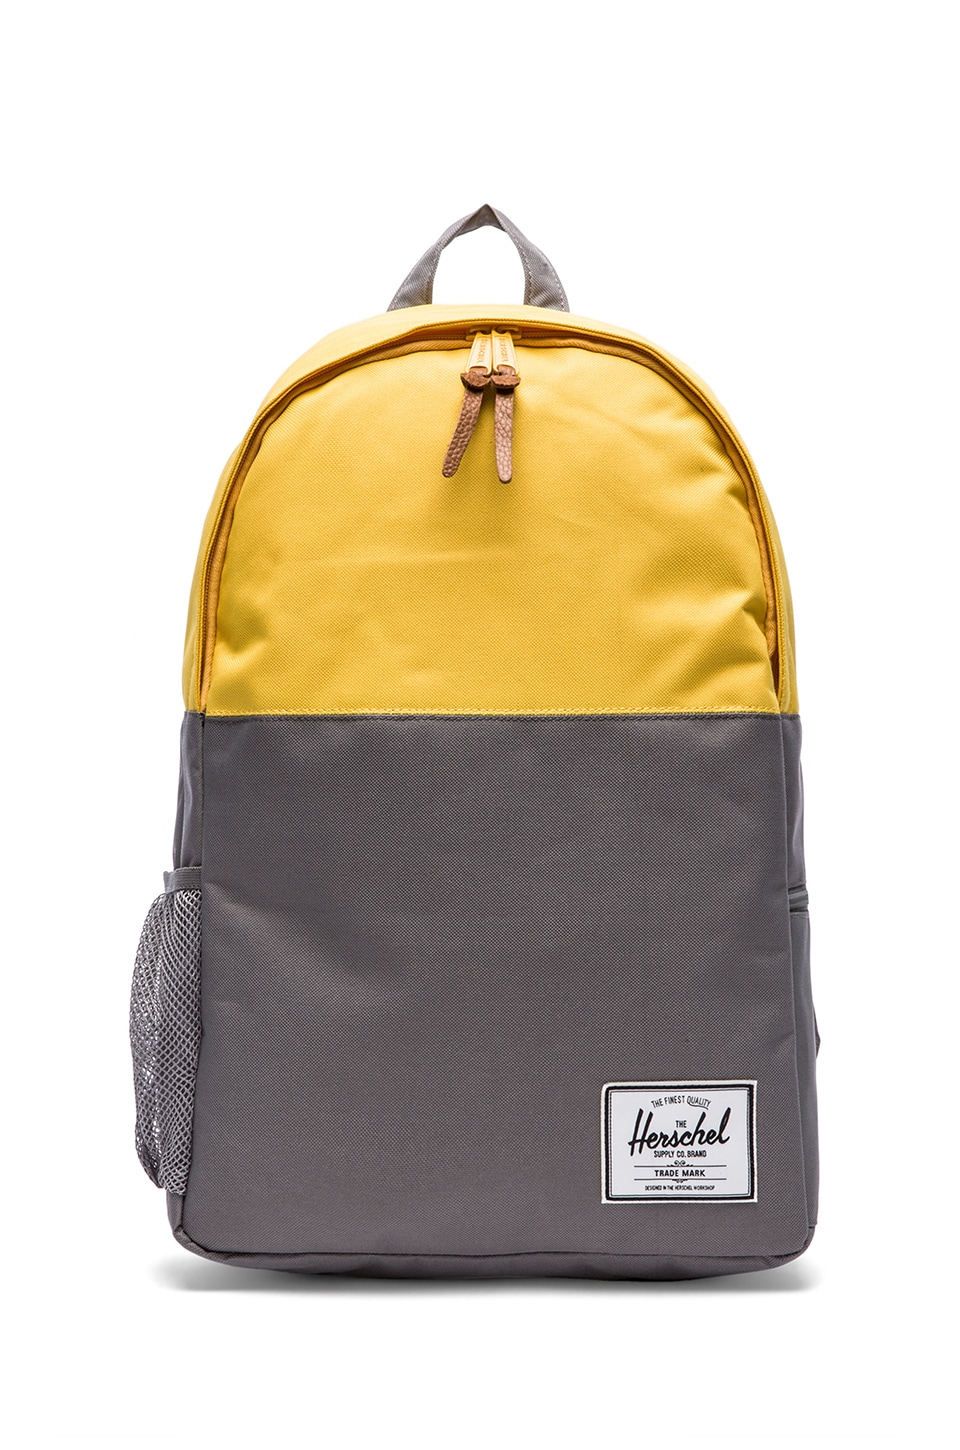 Herschel Supply Co. Jasper Backpack in Grey & Sunsoaked